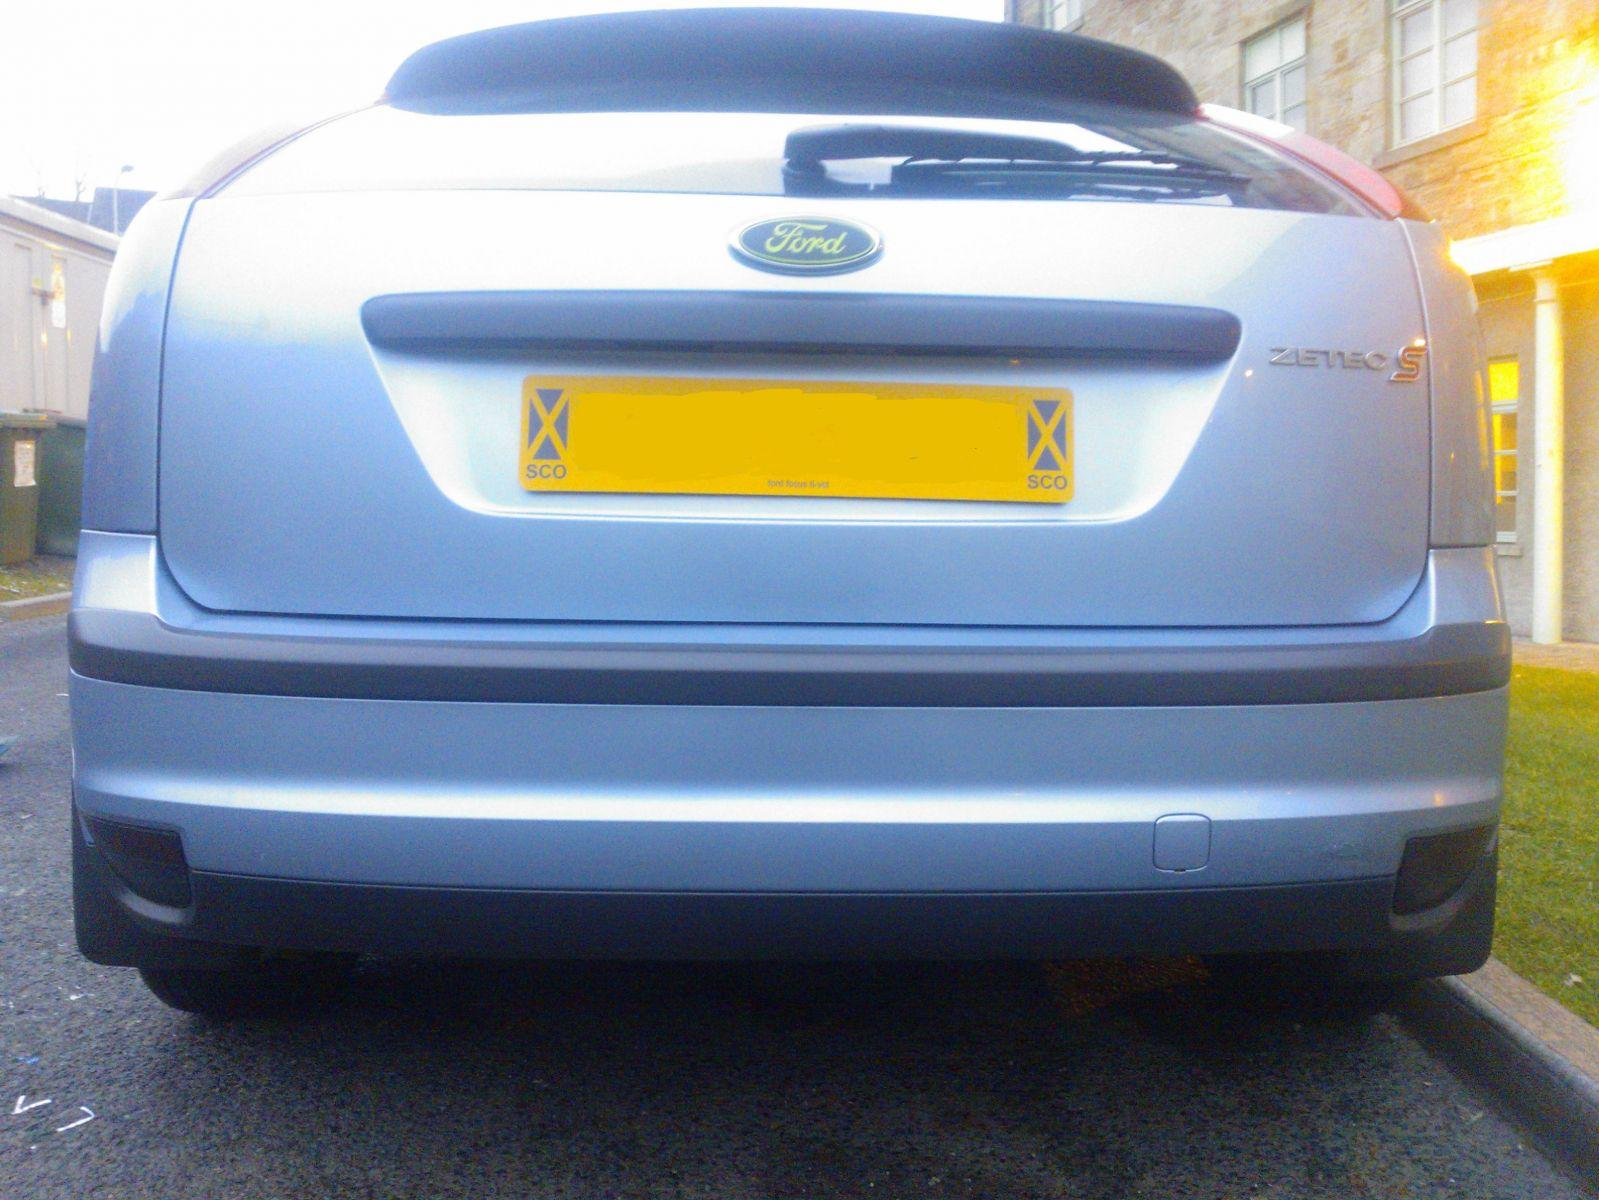 rear end with zetec s badge